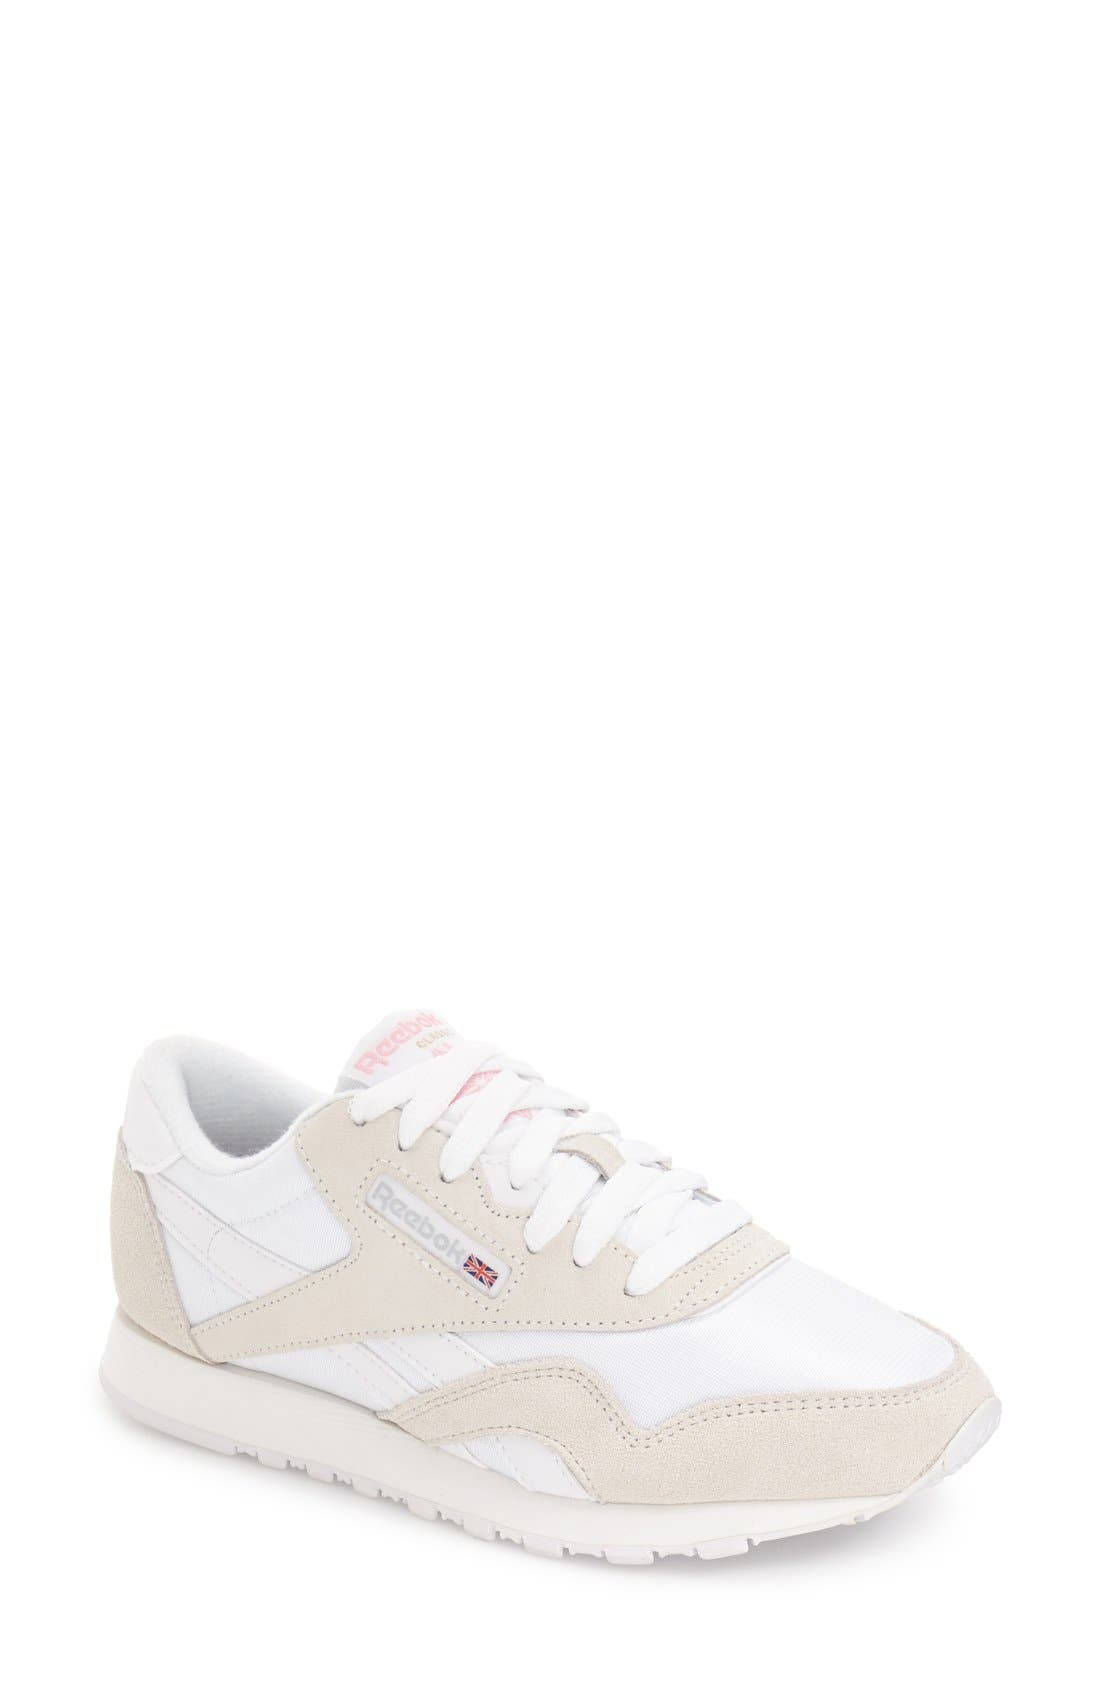 Reebok Women's Classic Nylon Casual Sneakers From Finish Line In White/light Grey